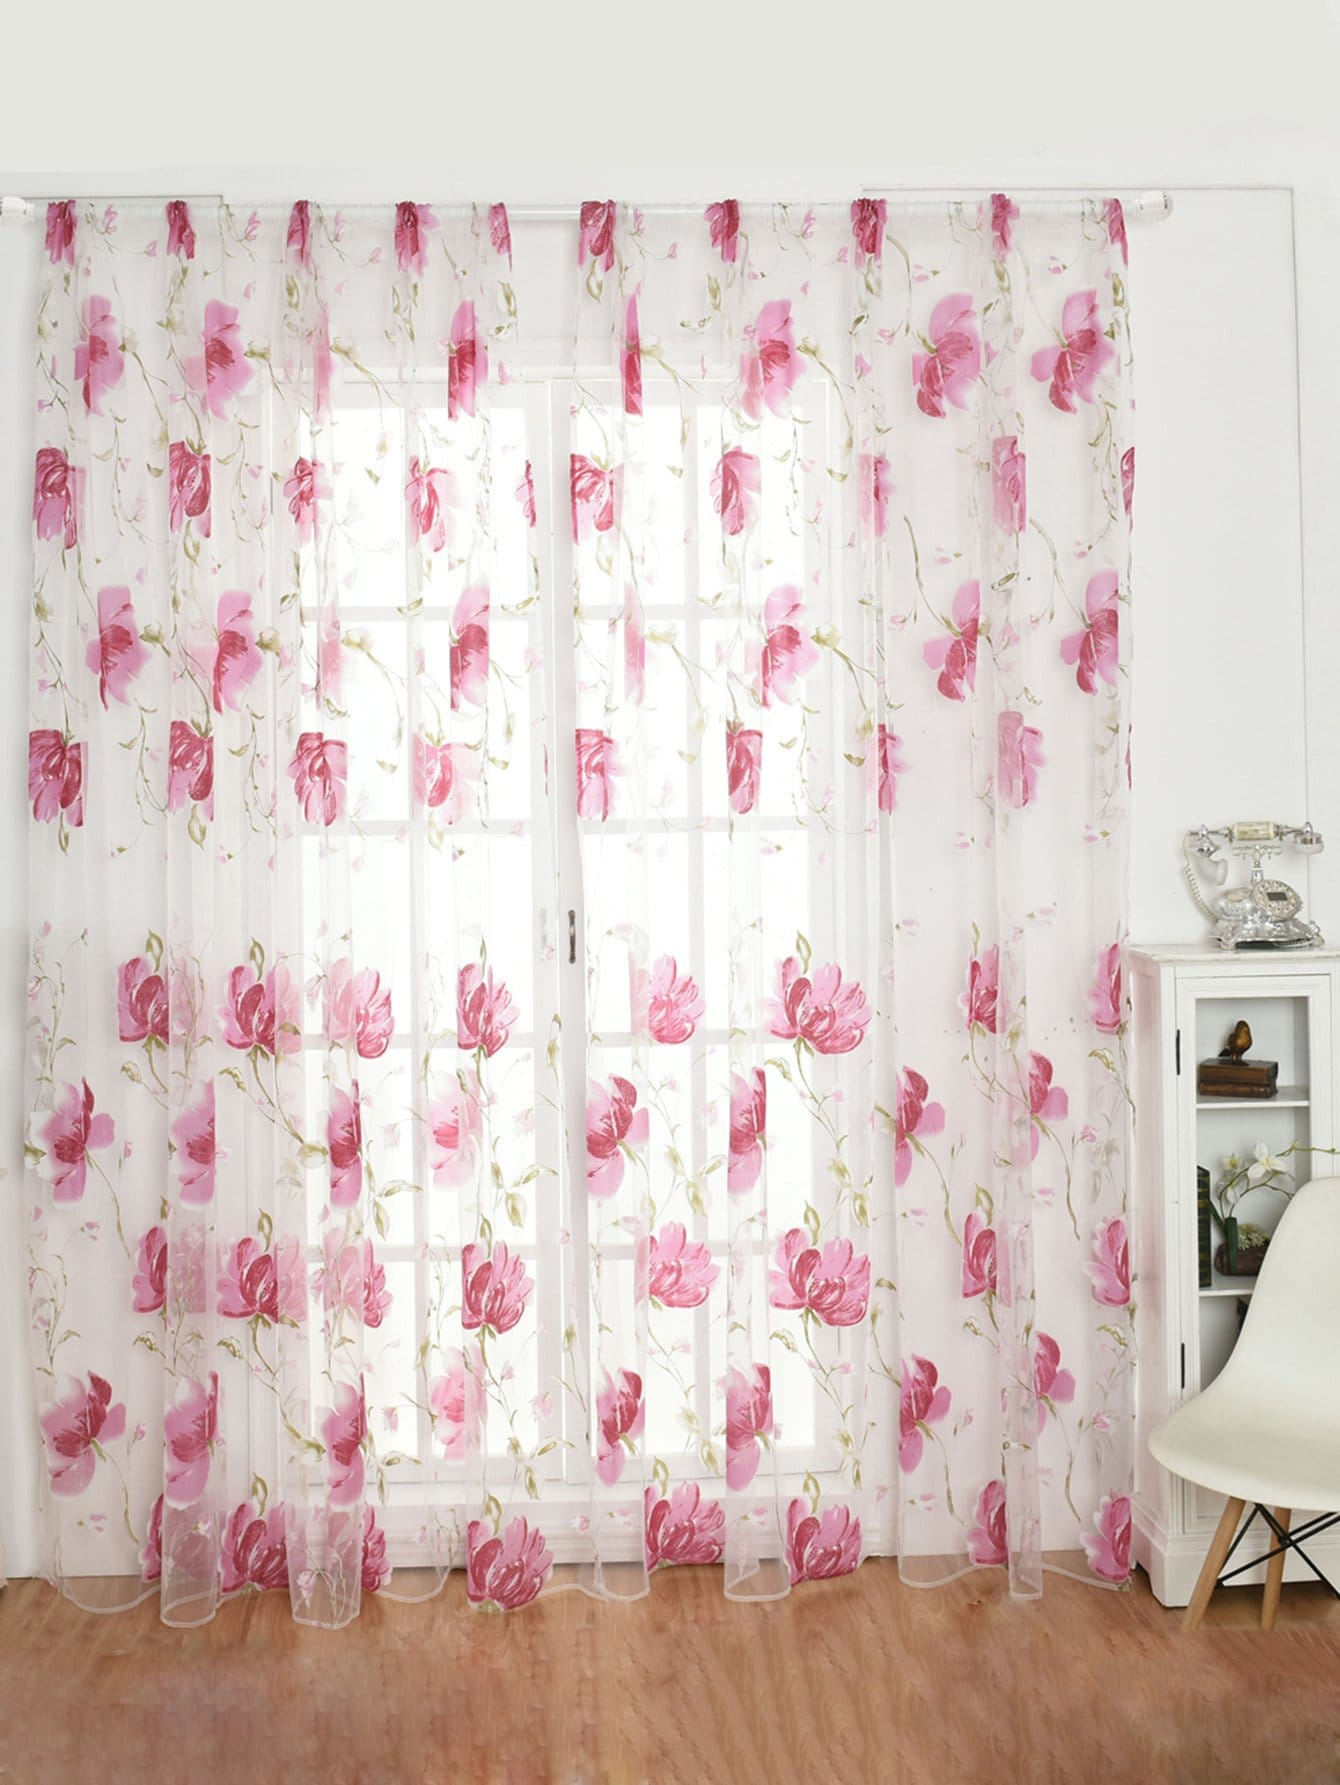 Floral Pattern Rod Pocket Sheer Curtain 1pc floral print rod pocket sheer curtain 1pc